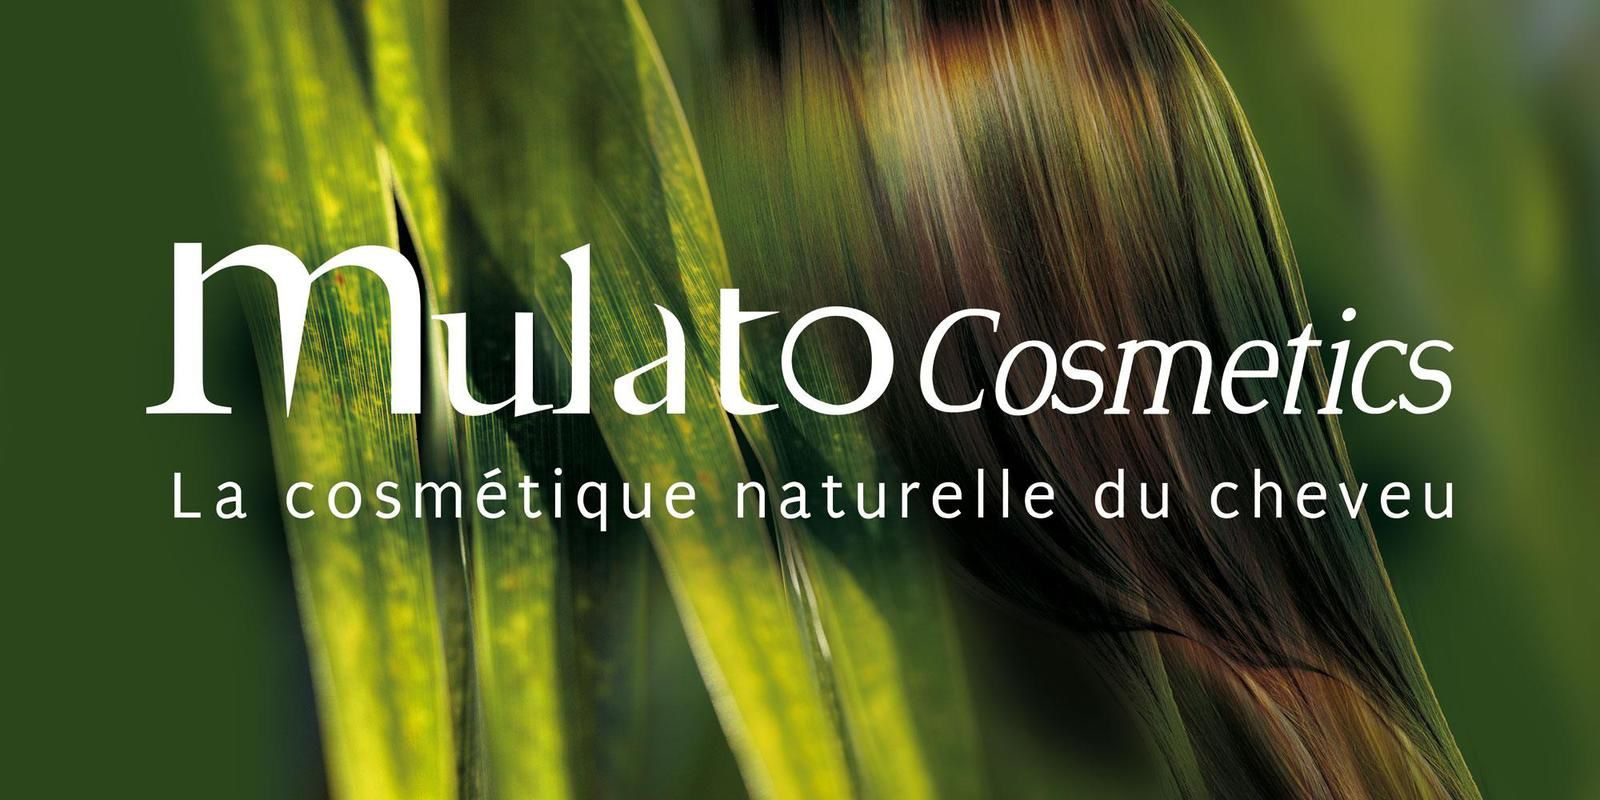 Mulato Cosmetics, des soins capillaires naturels made in France